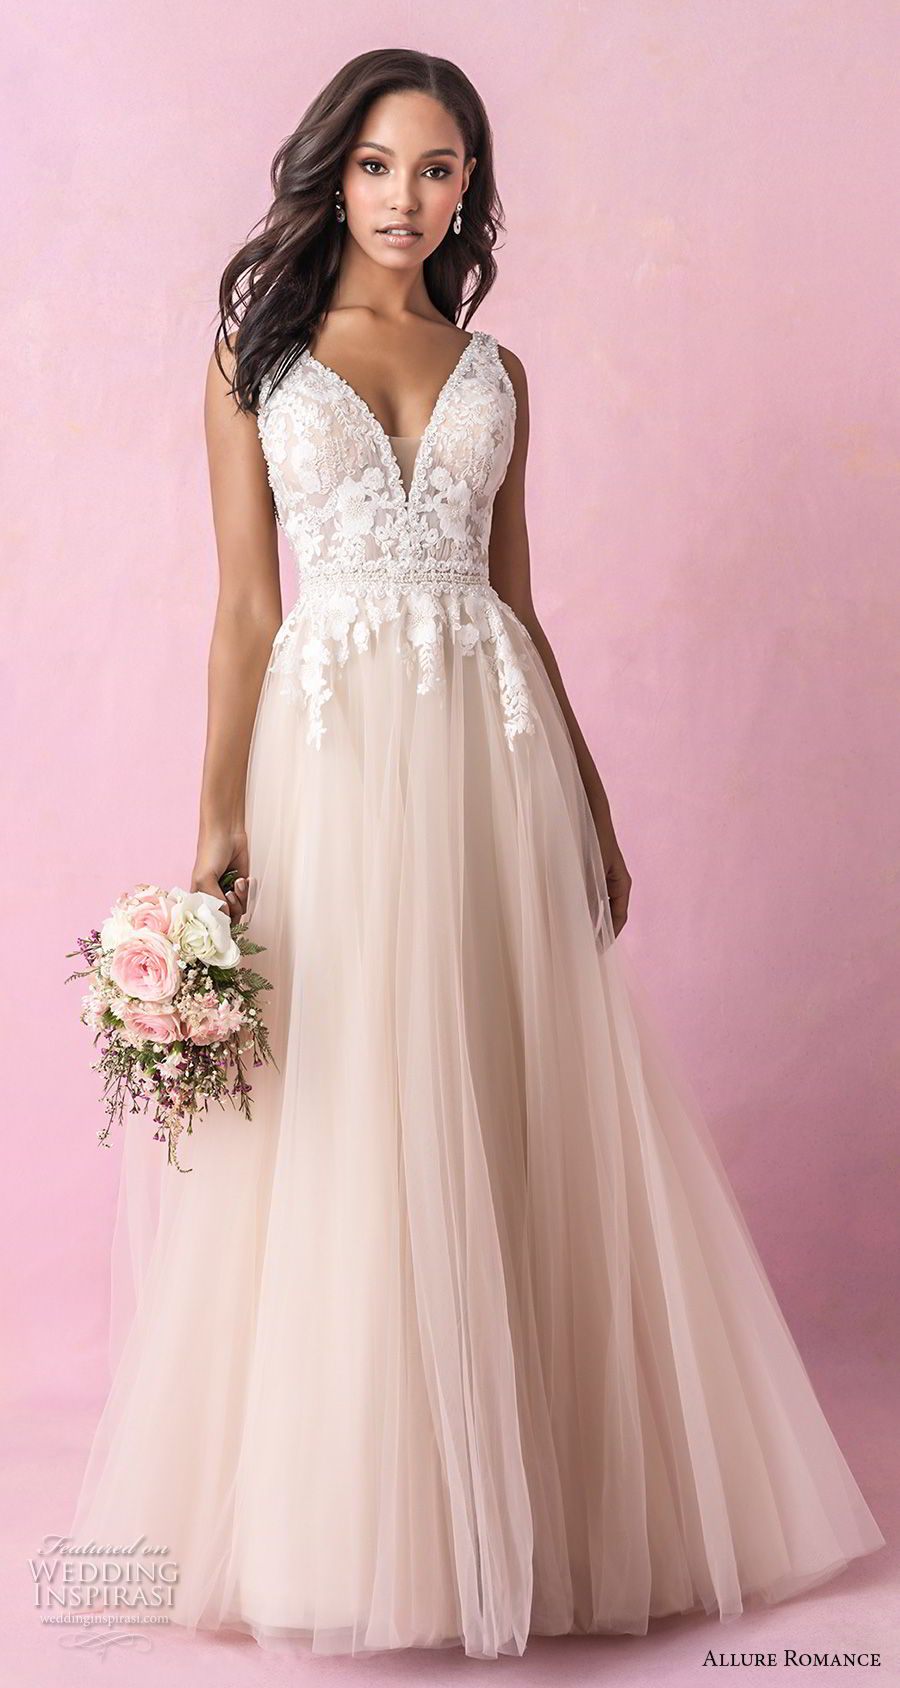 allure romance fall 2018 bridal sleeveless deep v neck heavily embellished bodice romantic blush soft a  line wedding dress open v back chapel train (3) mv